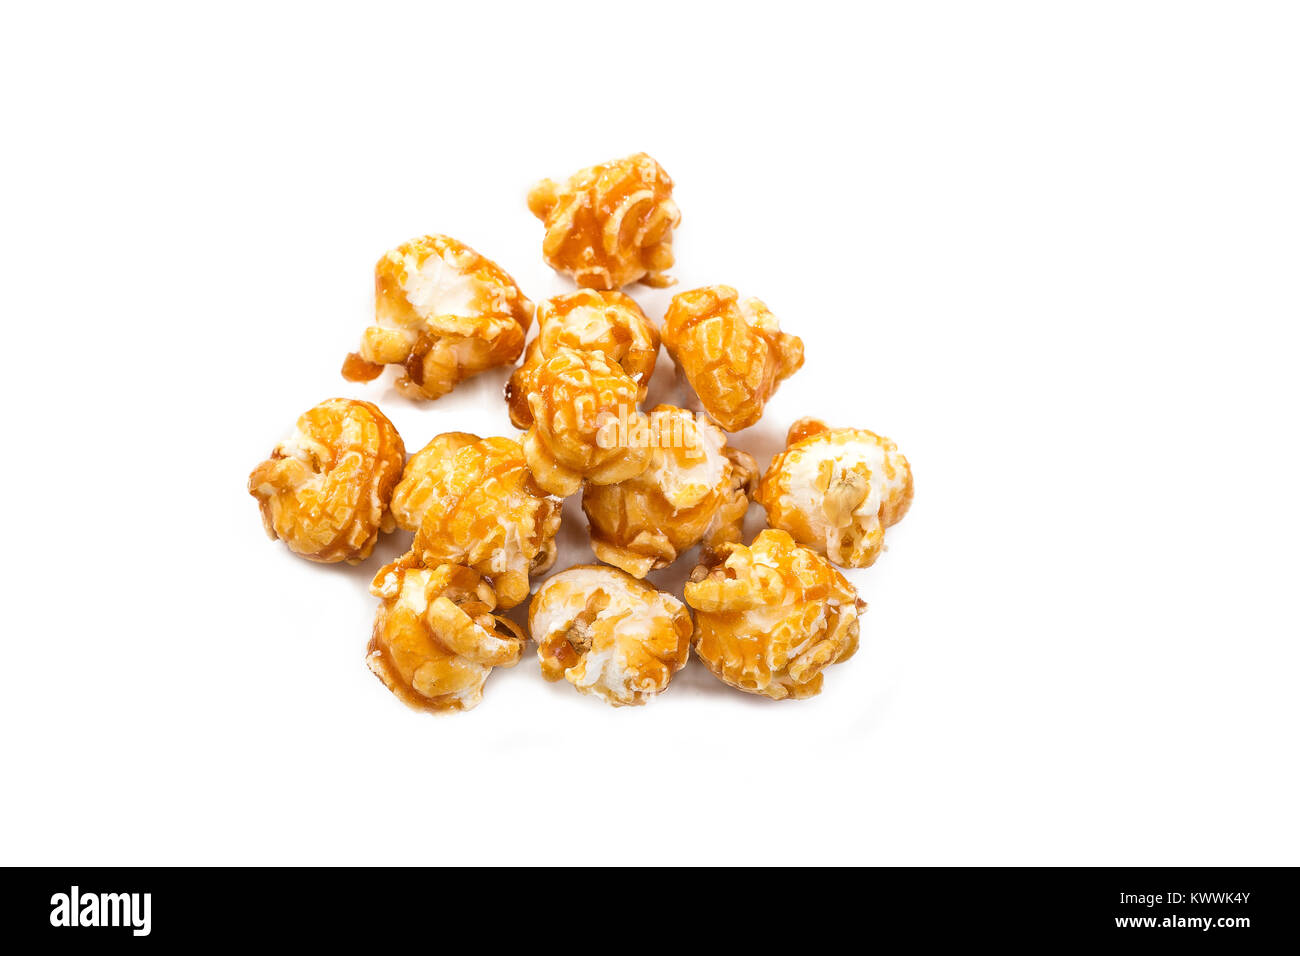 Popcorn isolated on a white background with clipping path - Stock Image